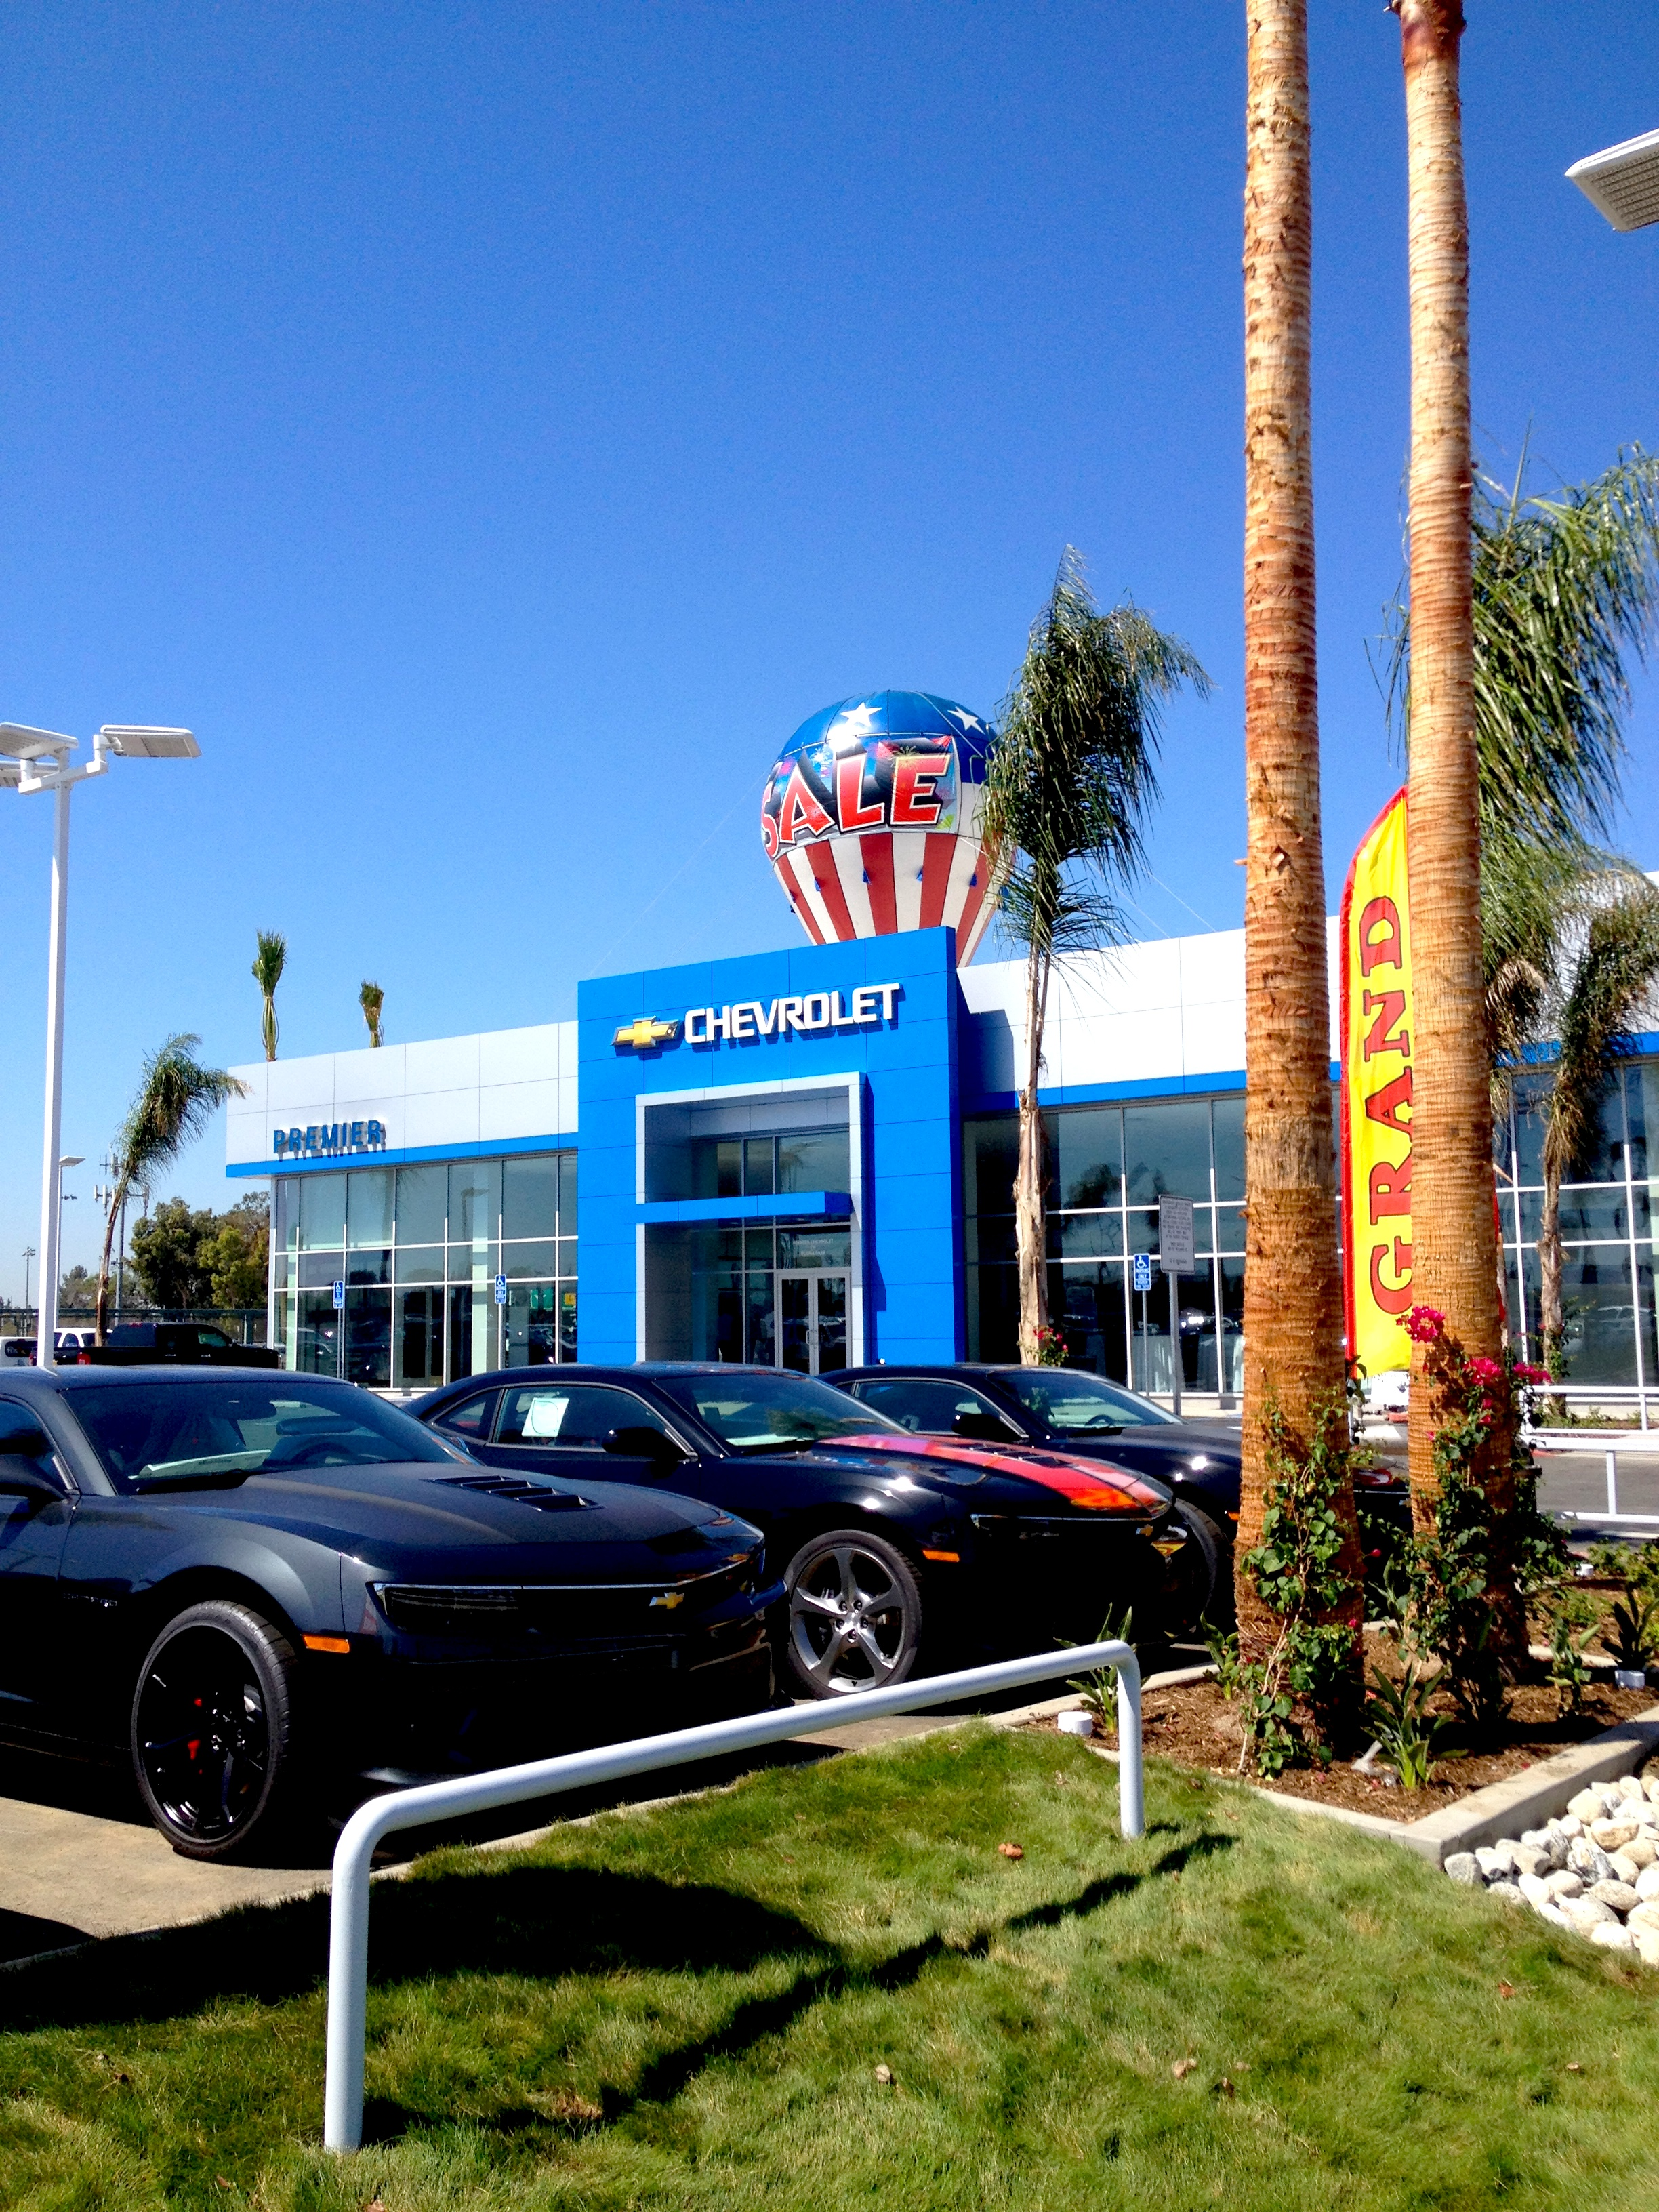 flash post record sales for american autos wai whitfield associates inc architecture auto dealership design flash post record sales for american